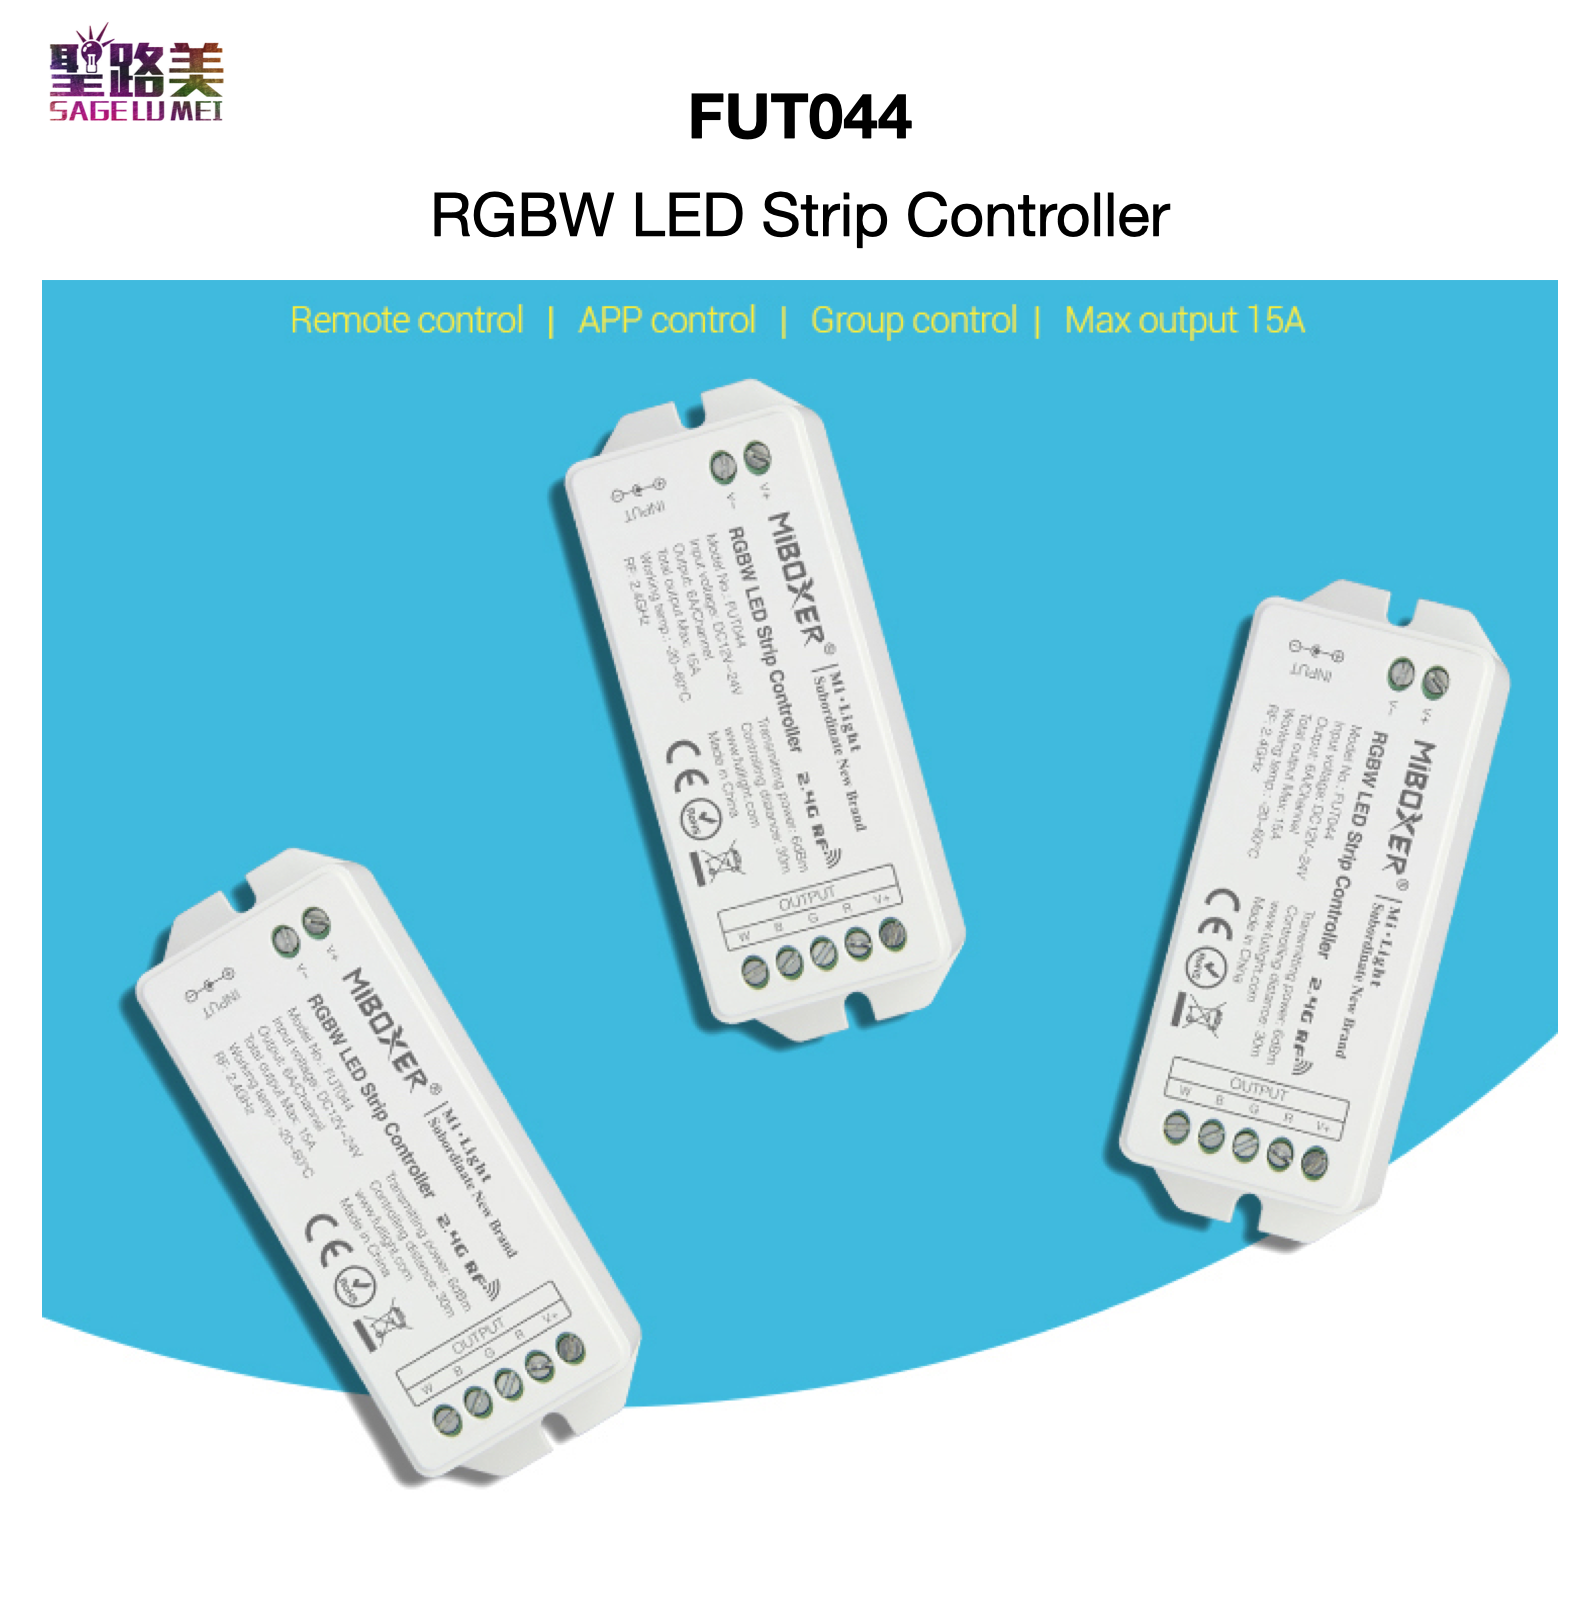 FUT044 RGBW LED Strip Controller APP / 2.4GHz Remote RF / Group Control Auto-synchronization Auto-transmitting MiBOXER Mi-Light